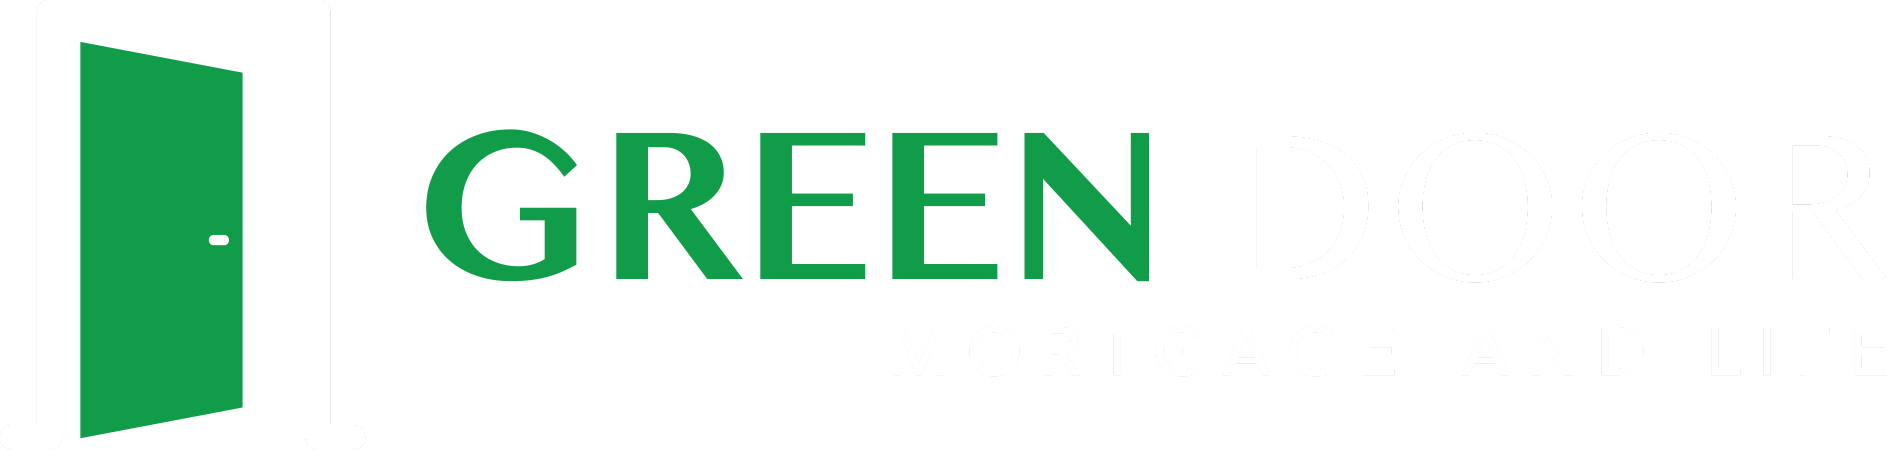 Green Door Mortgage and Life